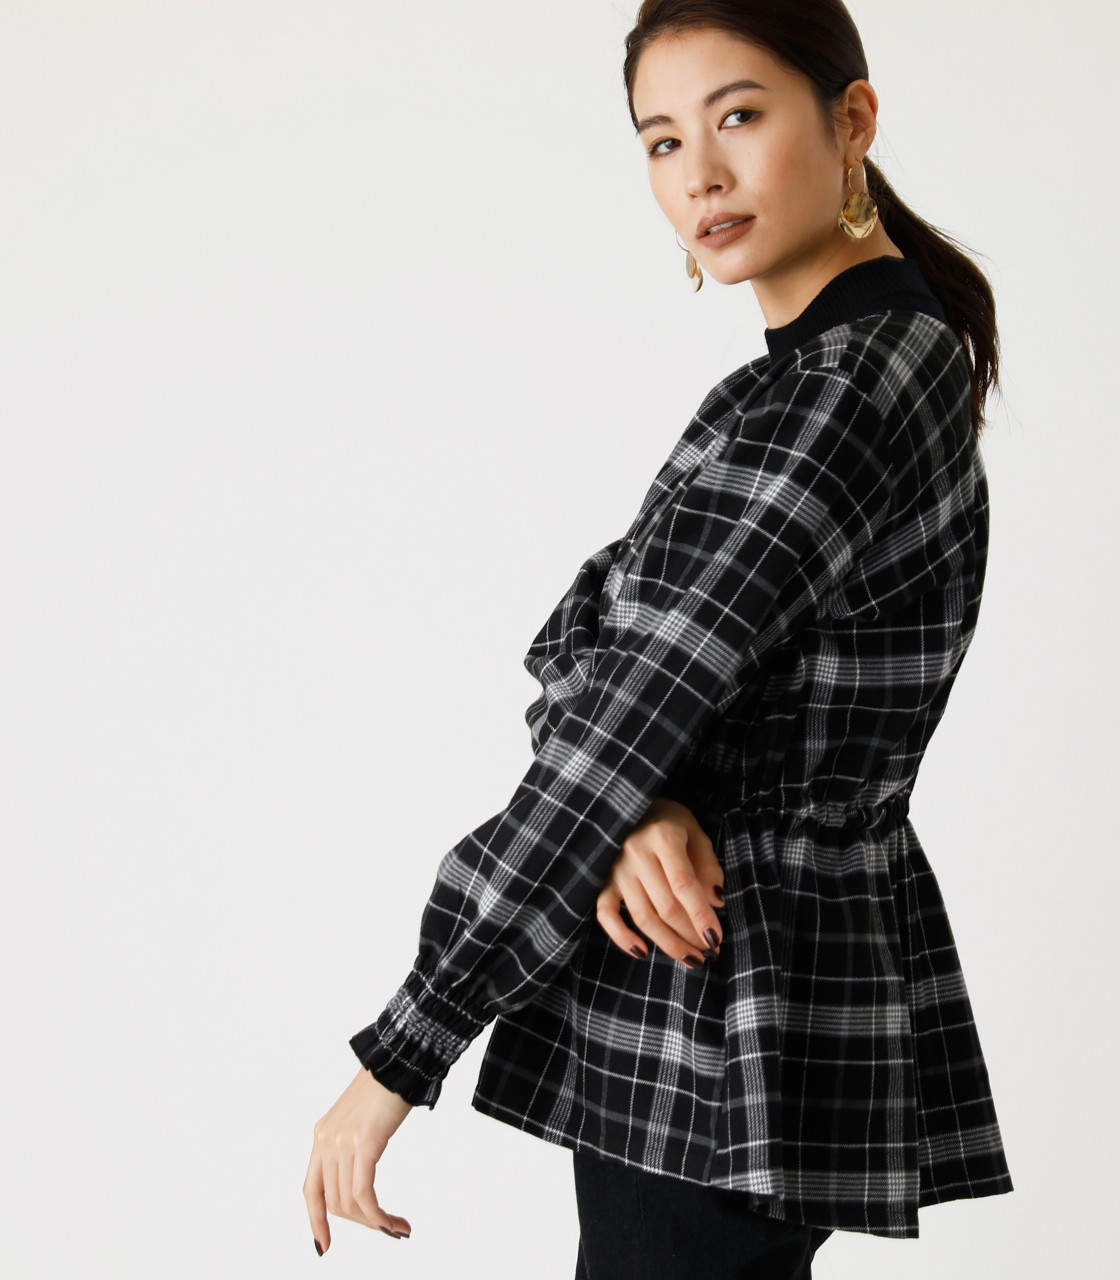 PEPLUM CHECK BLOUSE/ペプラムチェックブラウス 詳細画像 柄BLK 2